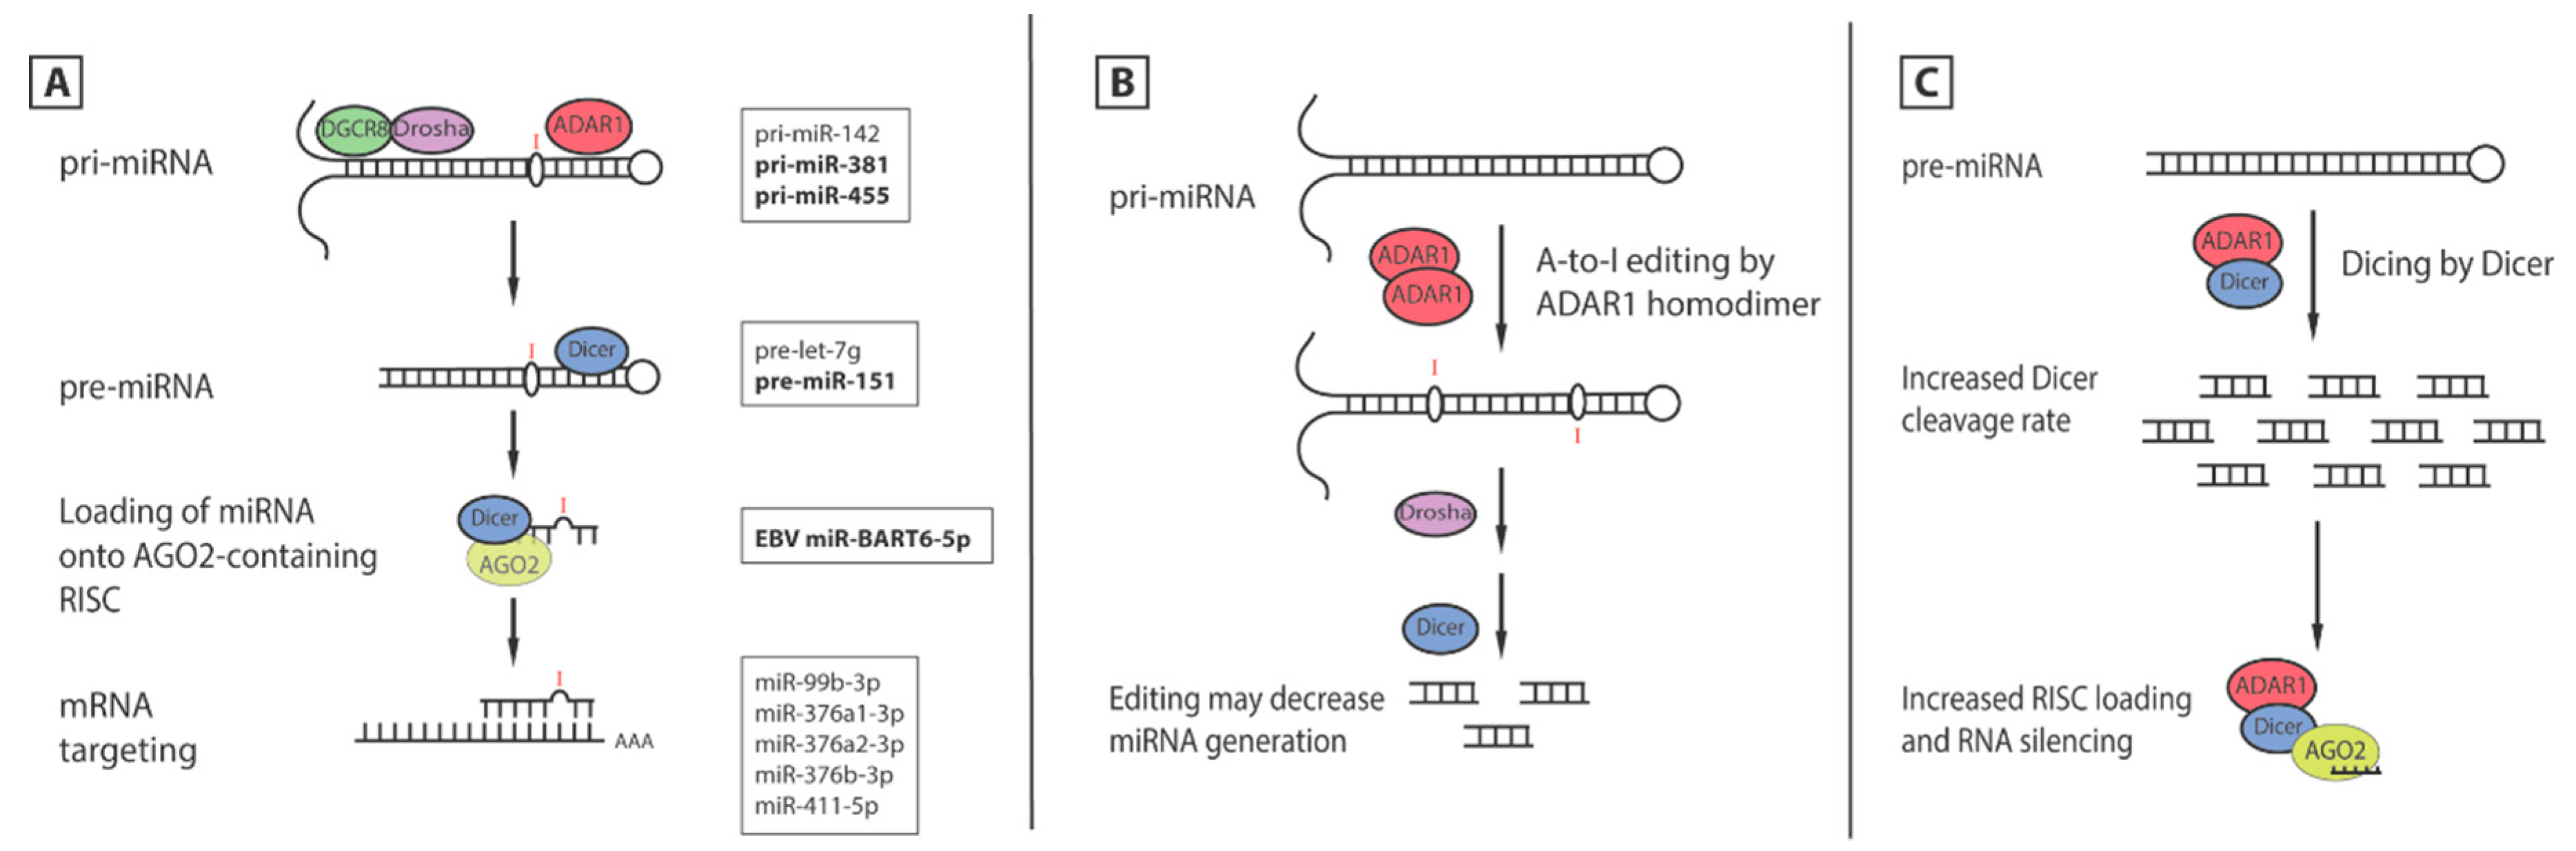 Functions of the RNA Editing Enzyme ADAR1 and Their Relevance to Human Diseases